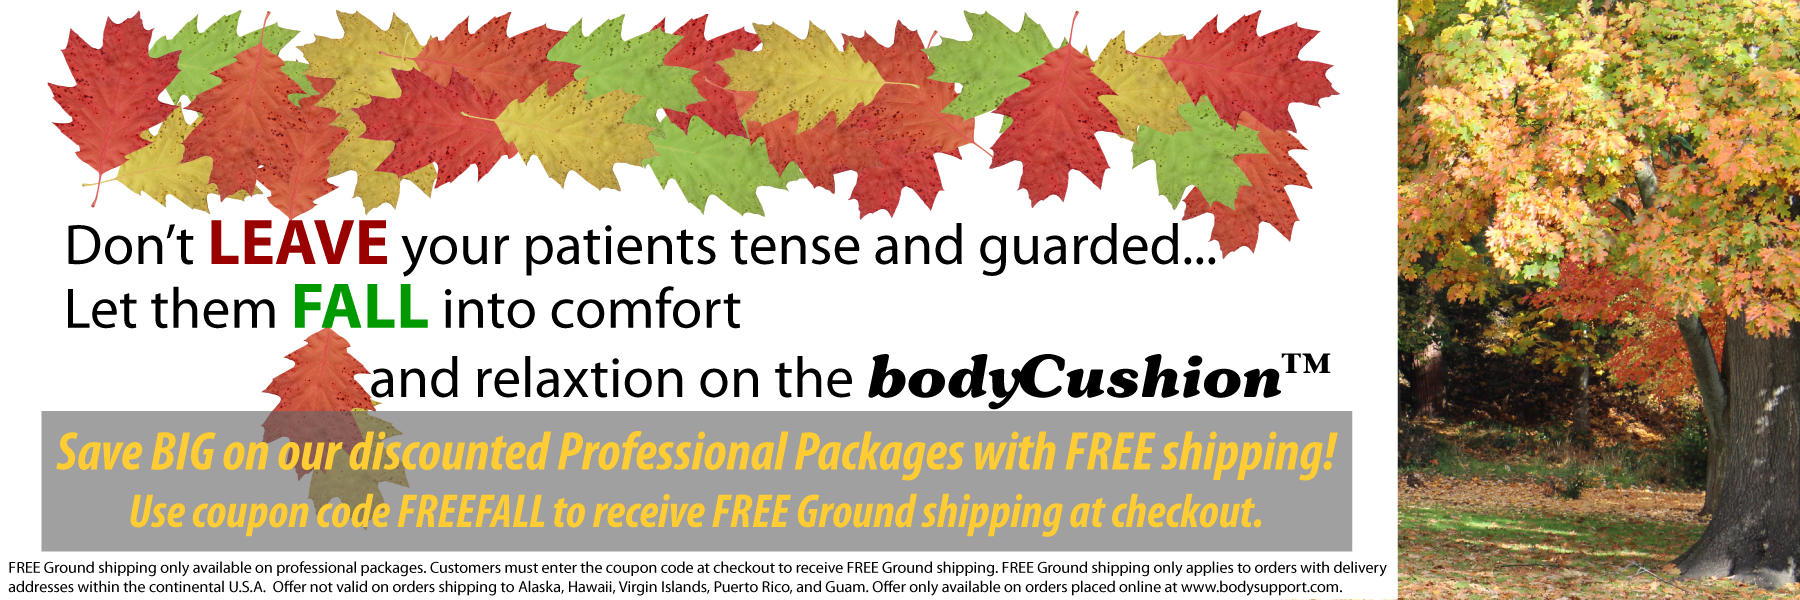 Save BIG on our discounted professional packages with FREE shipping!